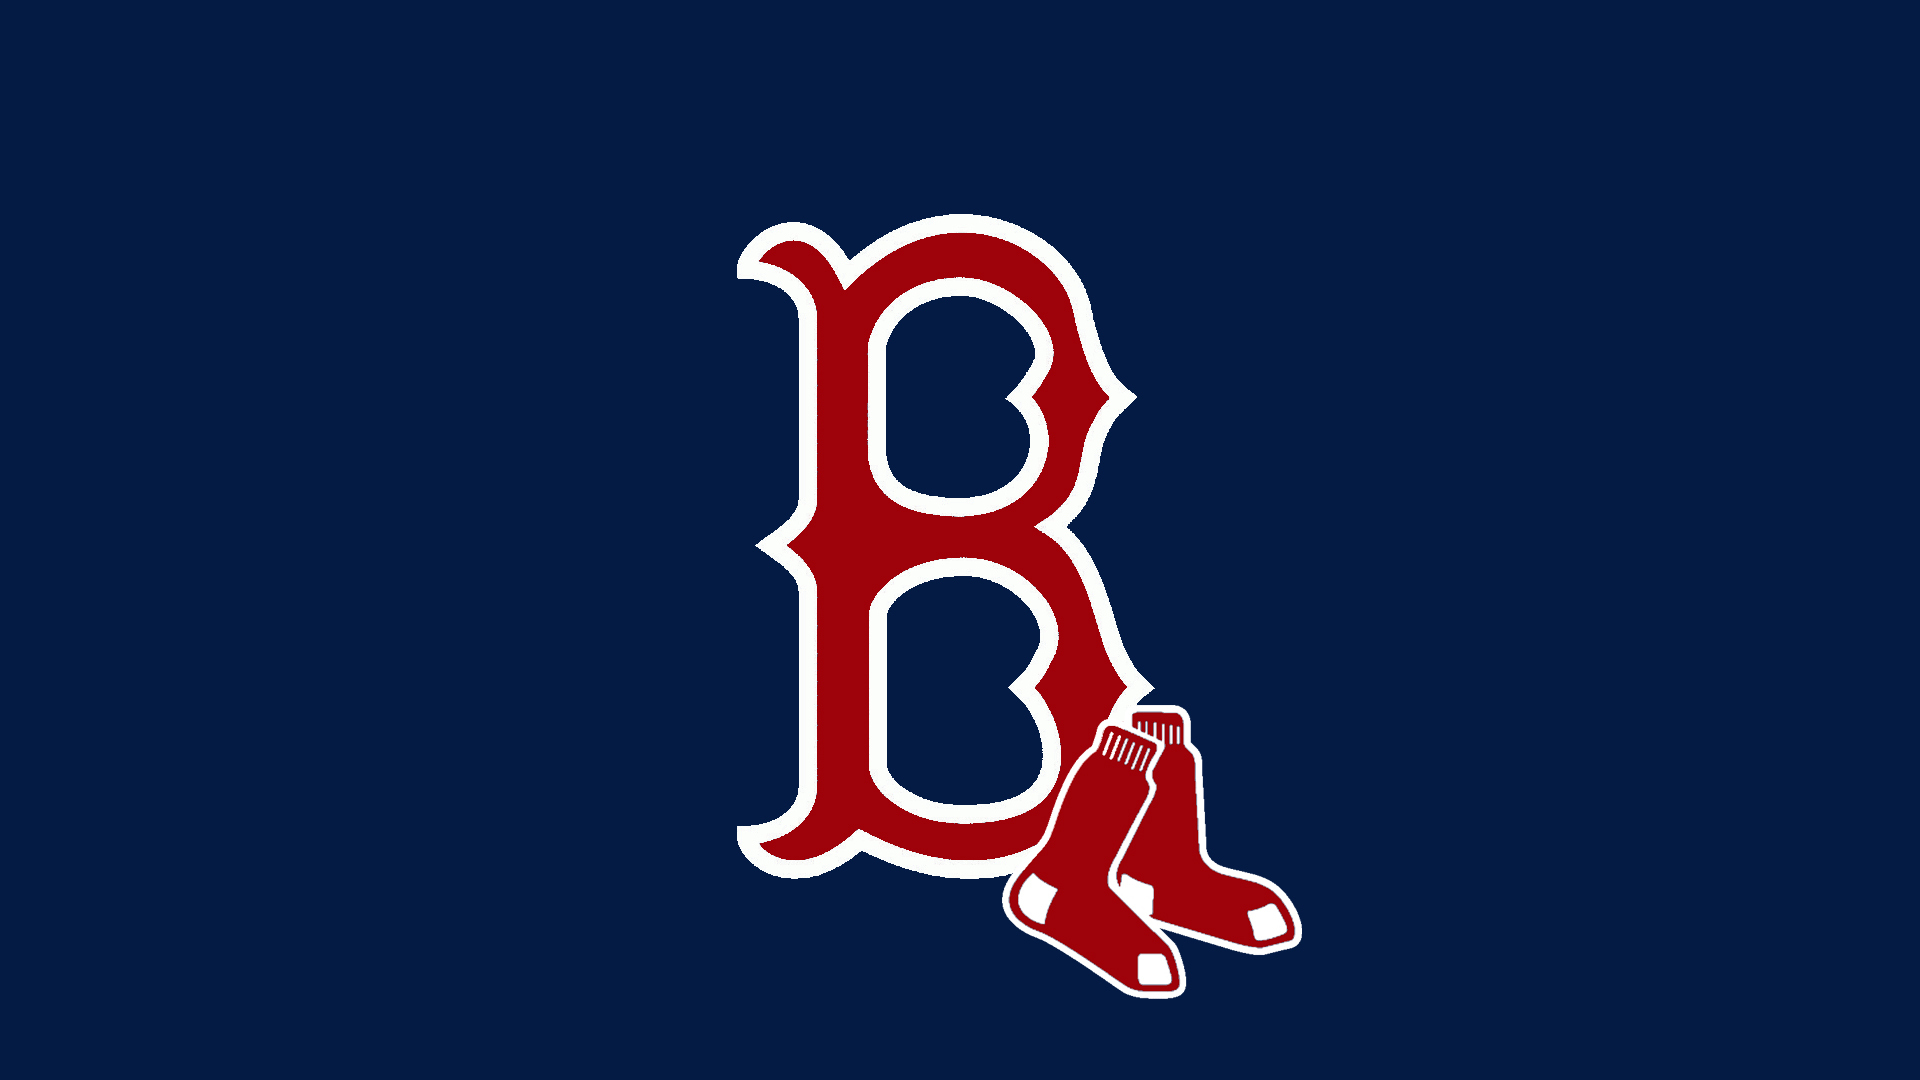 Boston Red Sox iPhone Wallpaper - WallpaperSafari